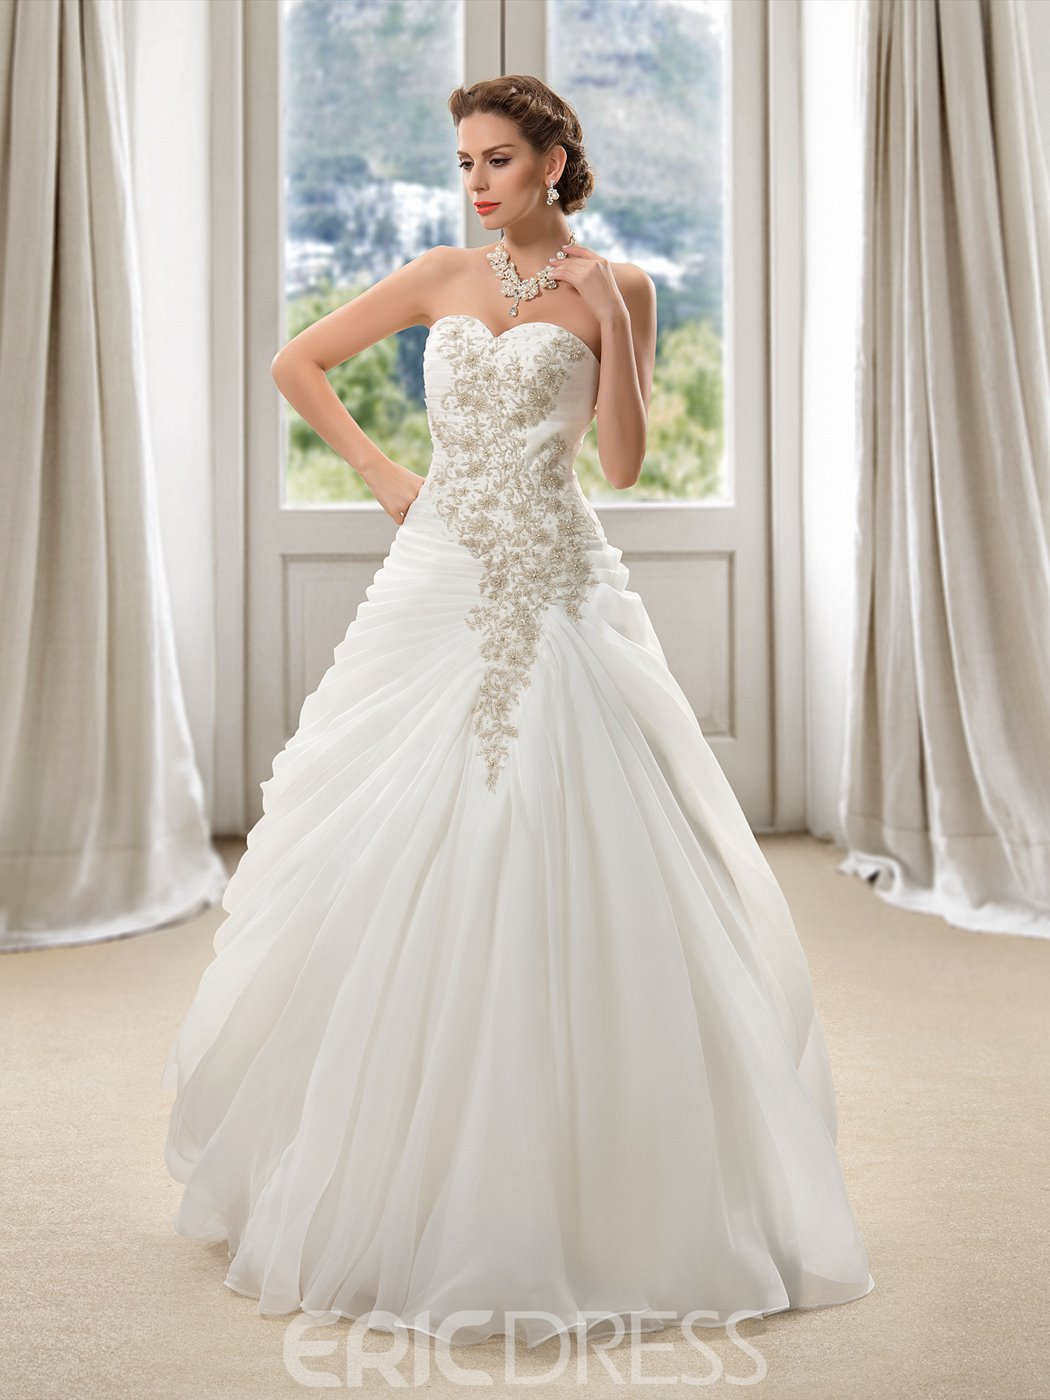 Charming Beading Draped Ball Gown Wedding Dress